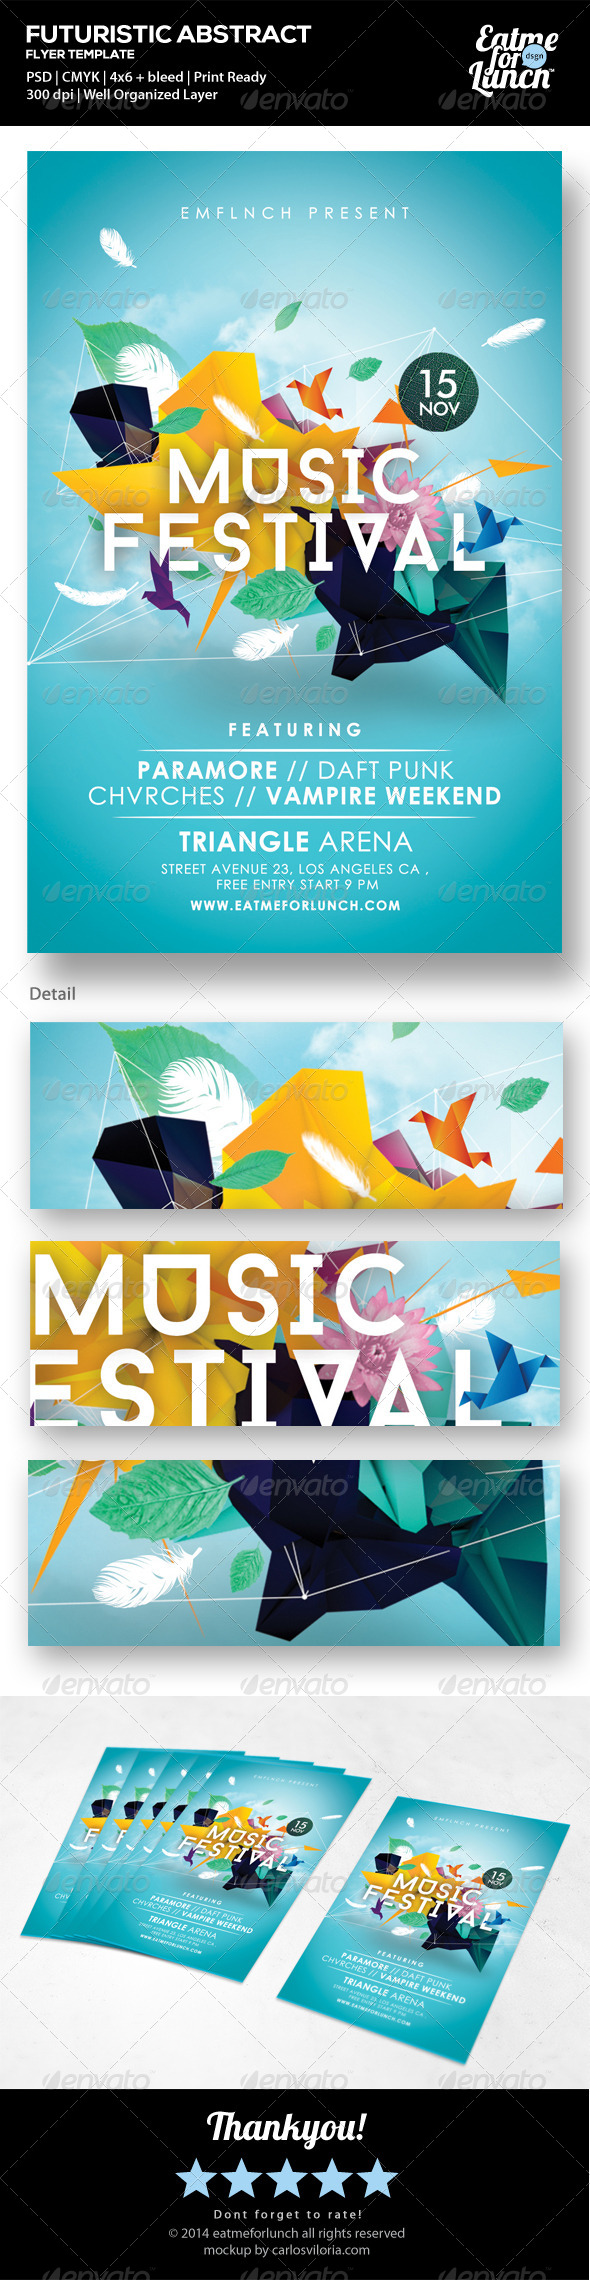 GraphicRiver Futuristic Abstract Gigs Festival Flyer Templates 7056792